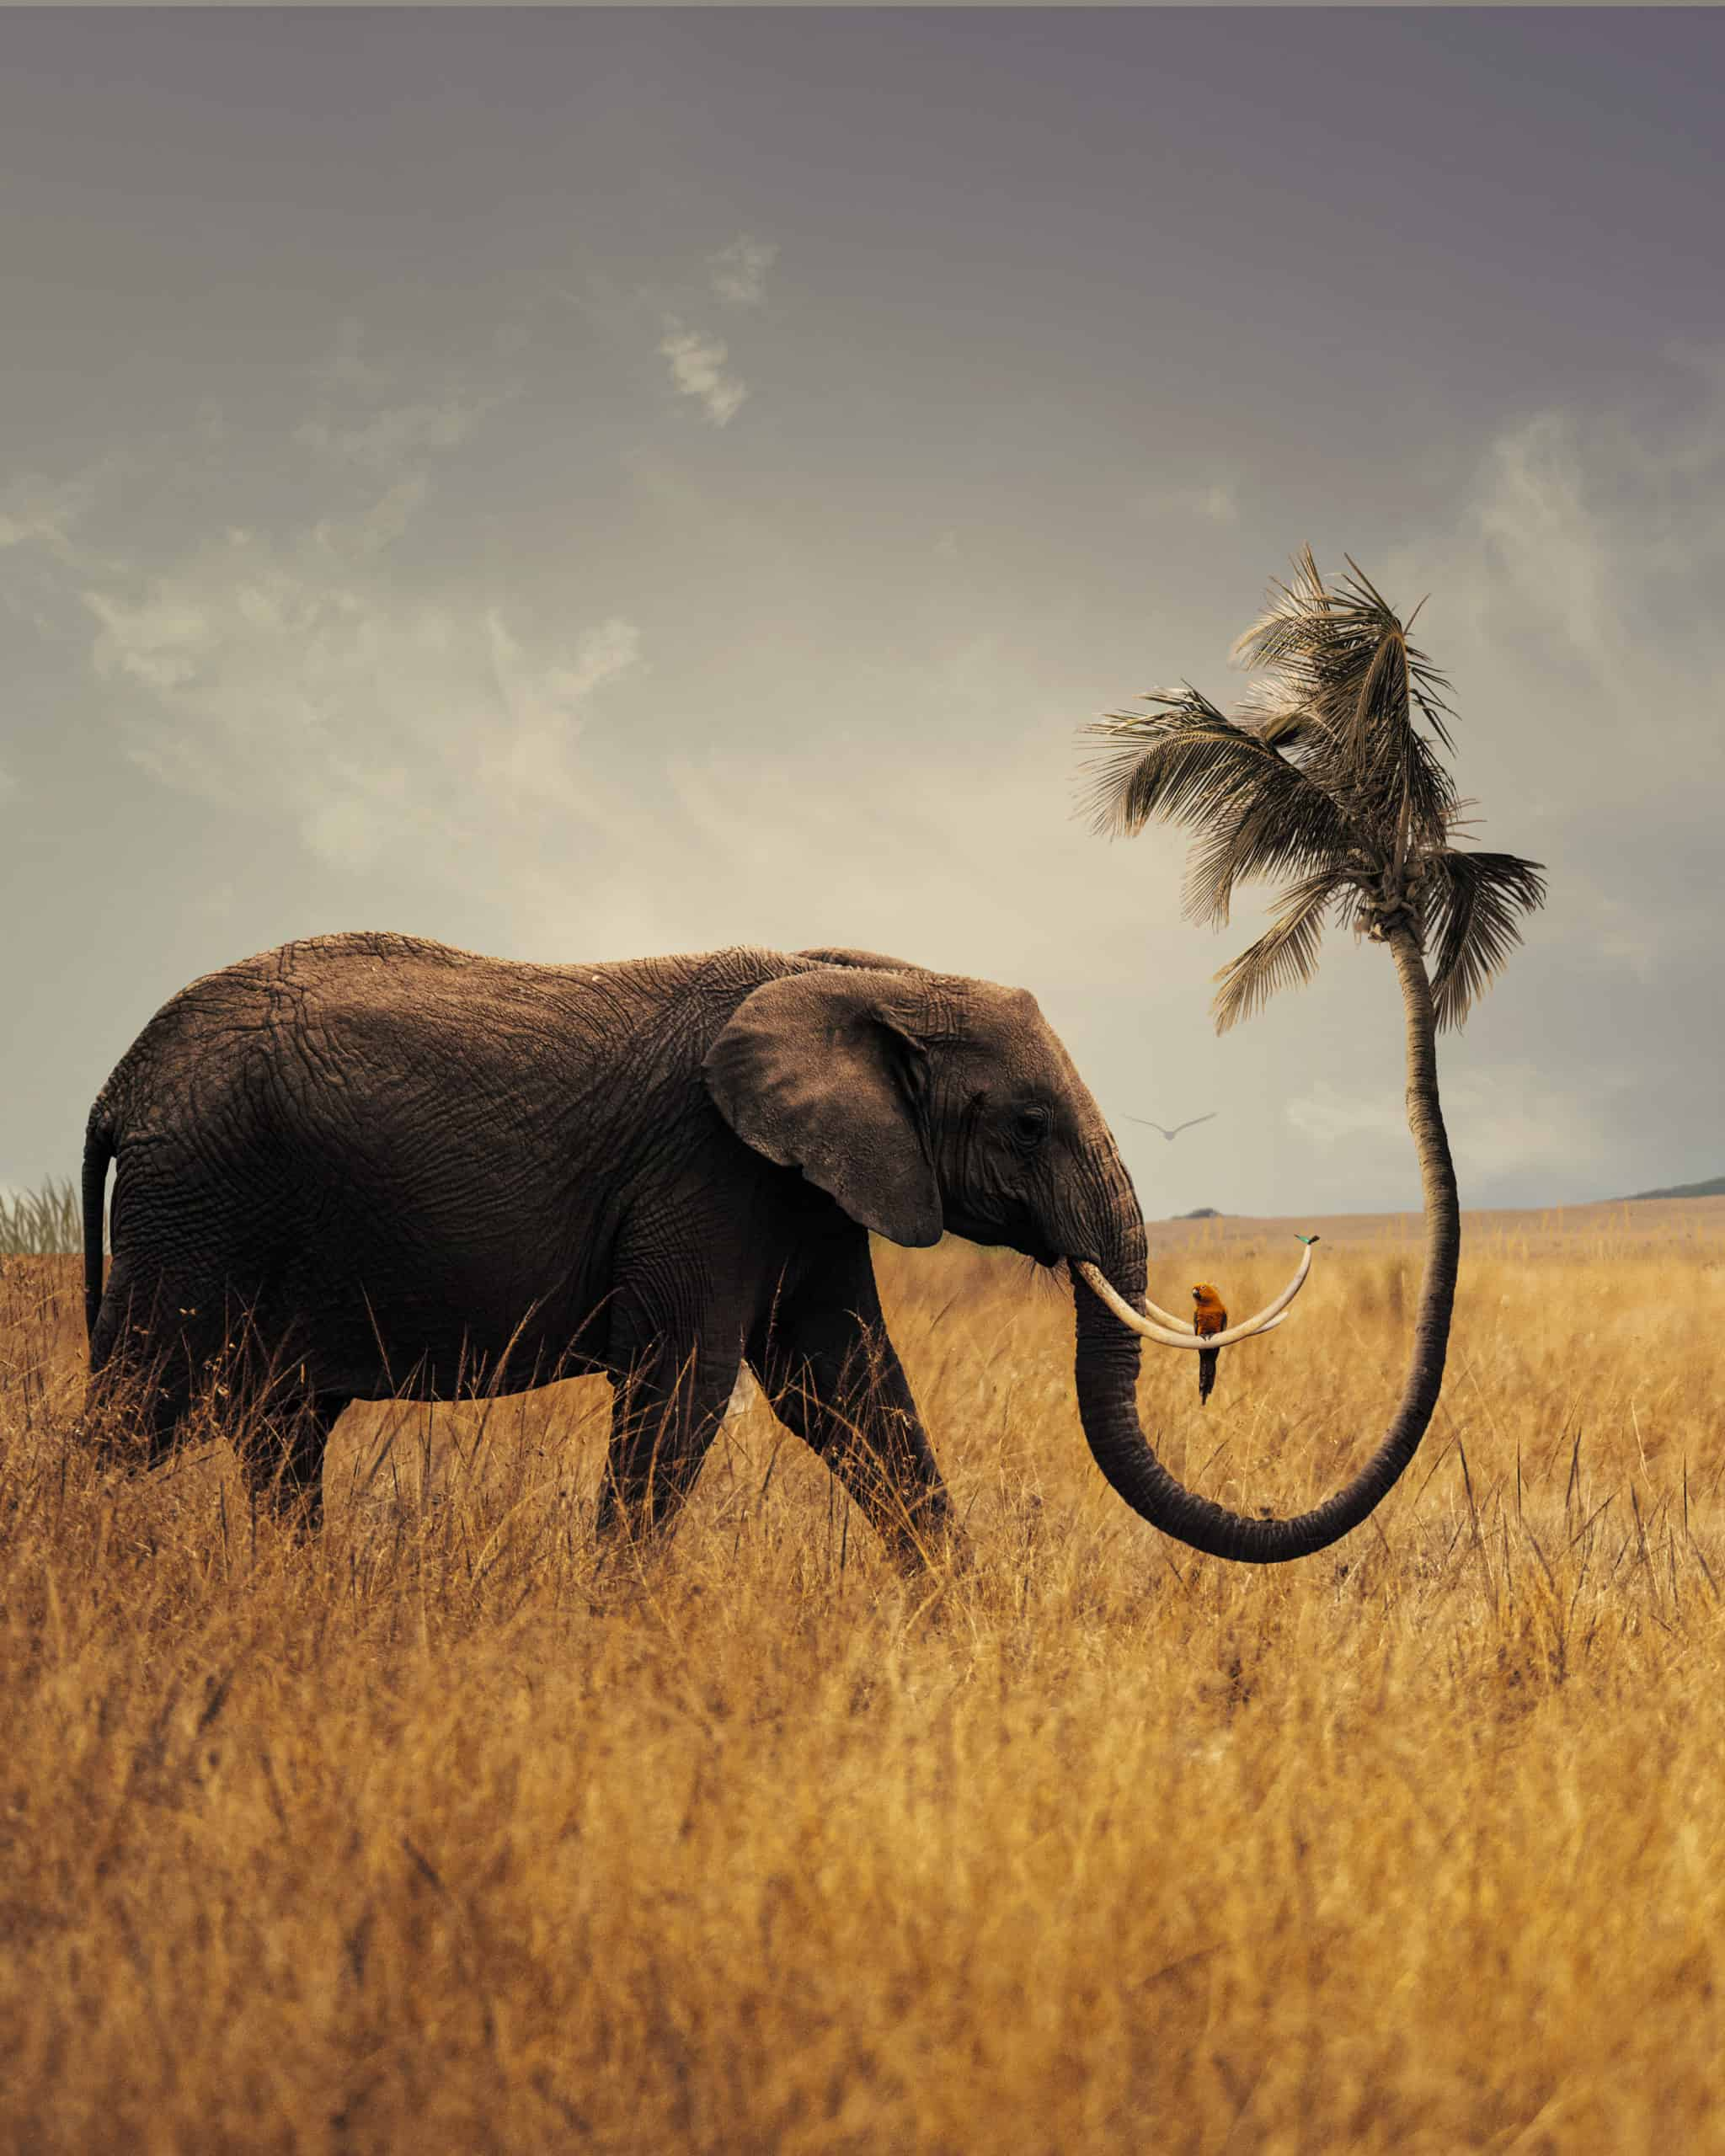 Learn How to Create a Surreal Scene of Elephant with a Palm Trunk